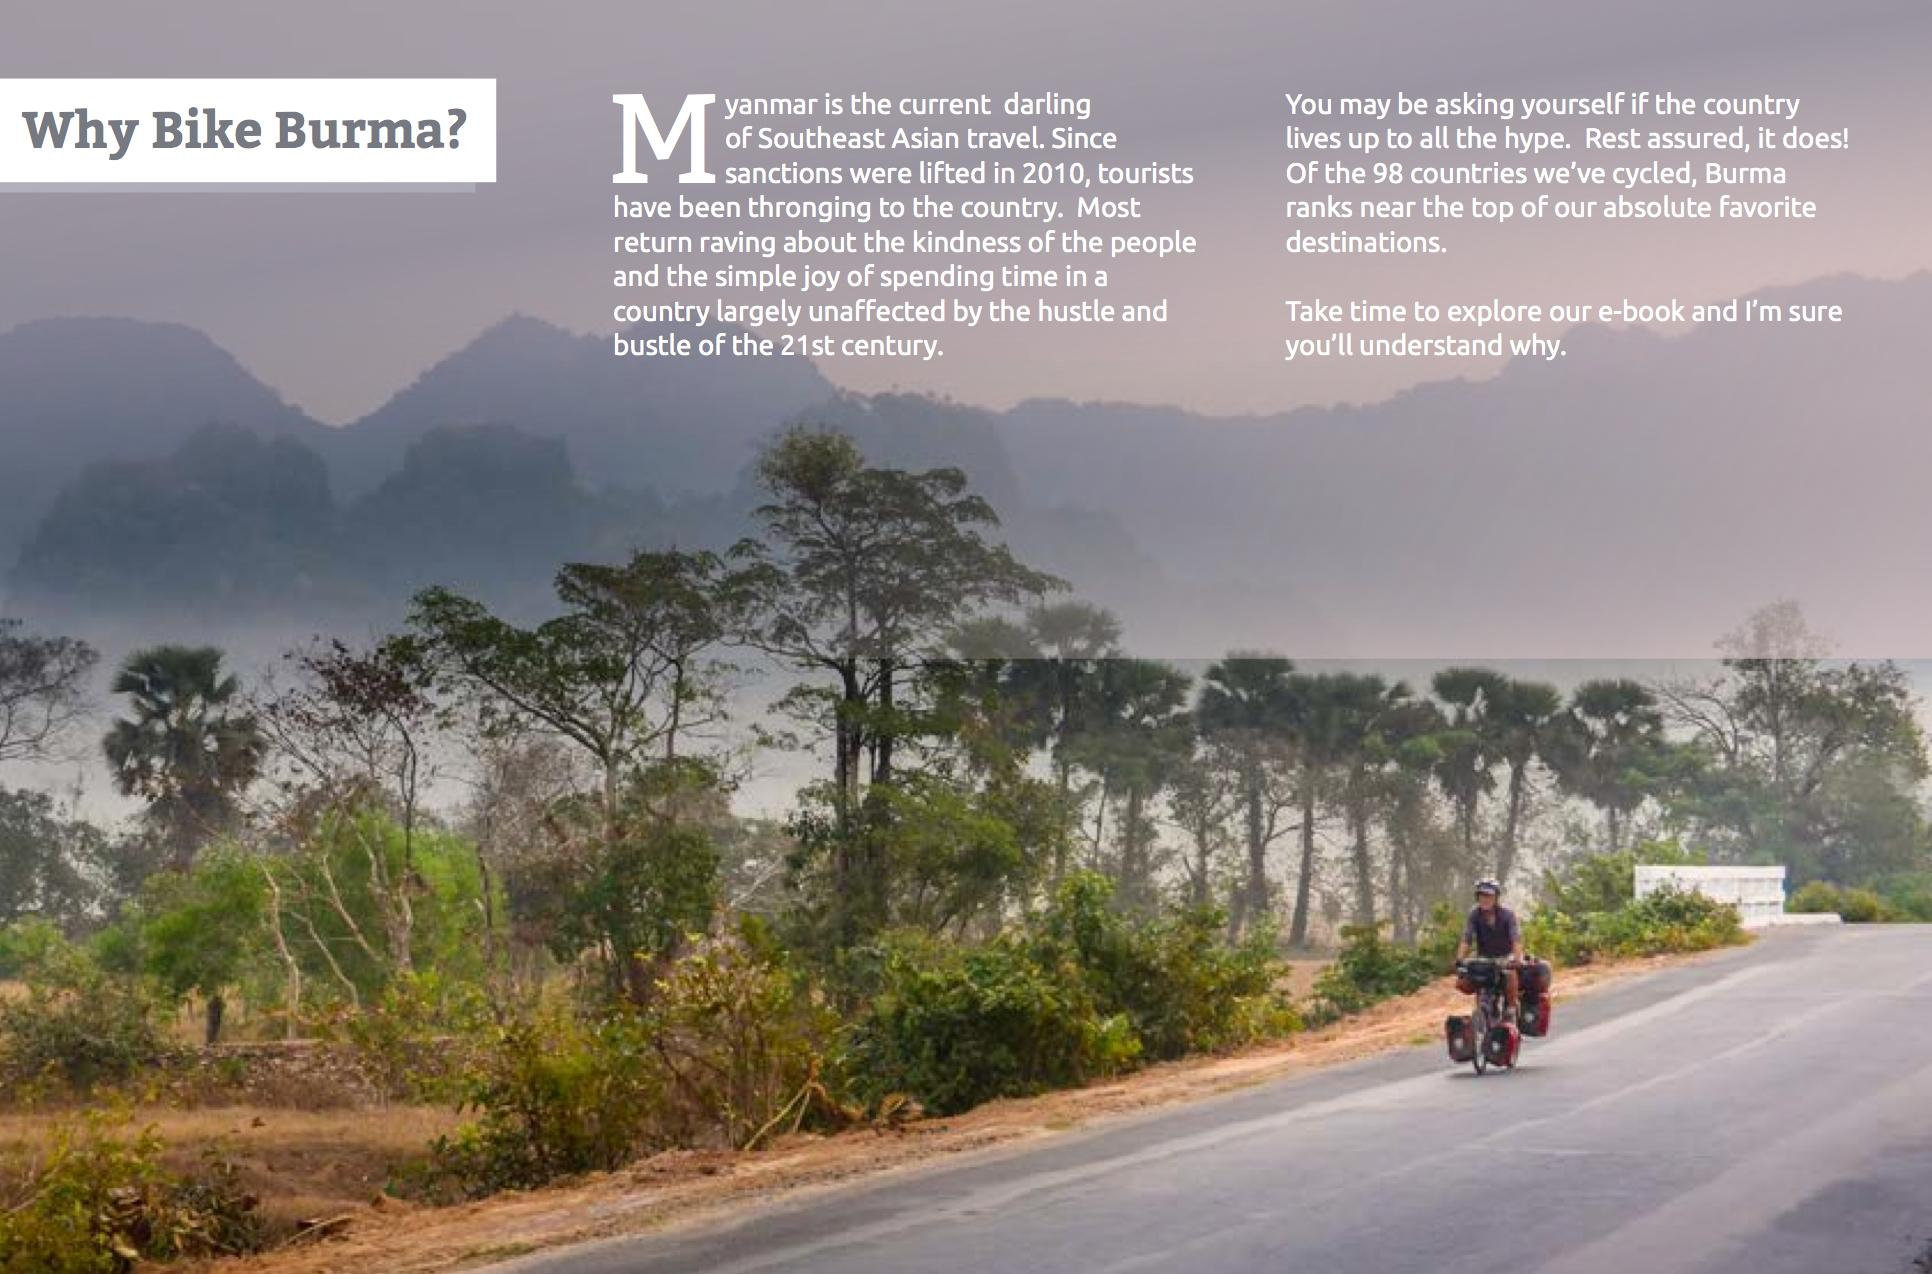 Why Burma by Bike